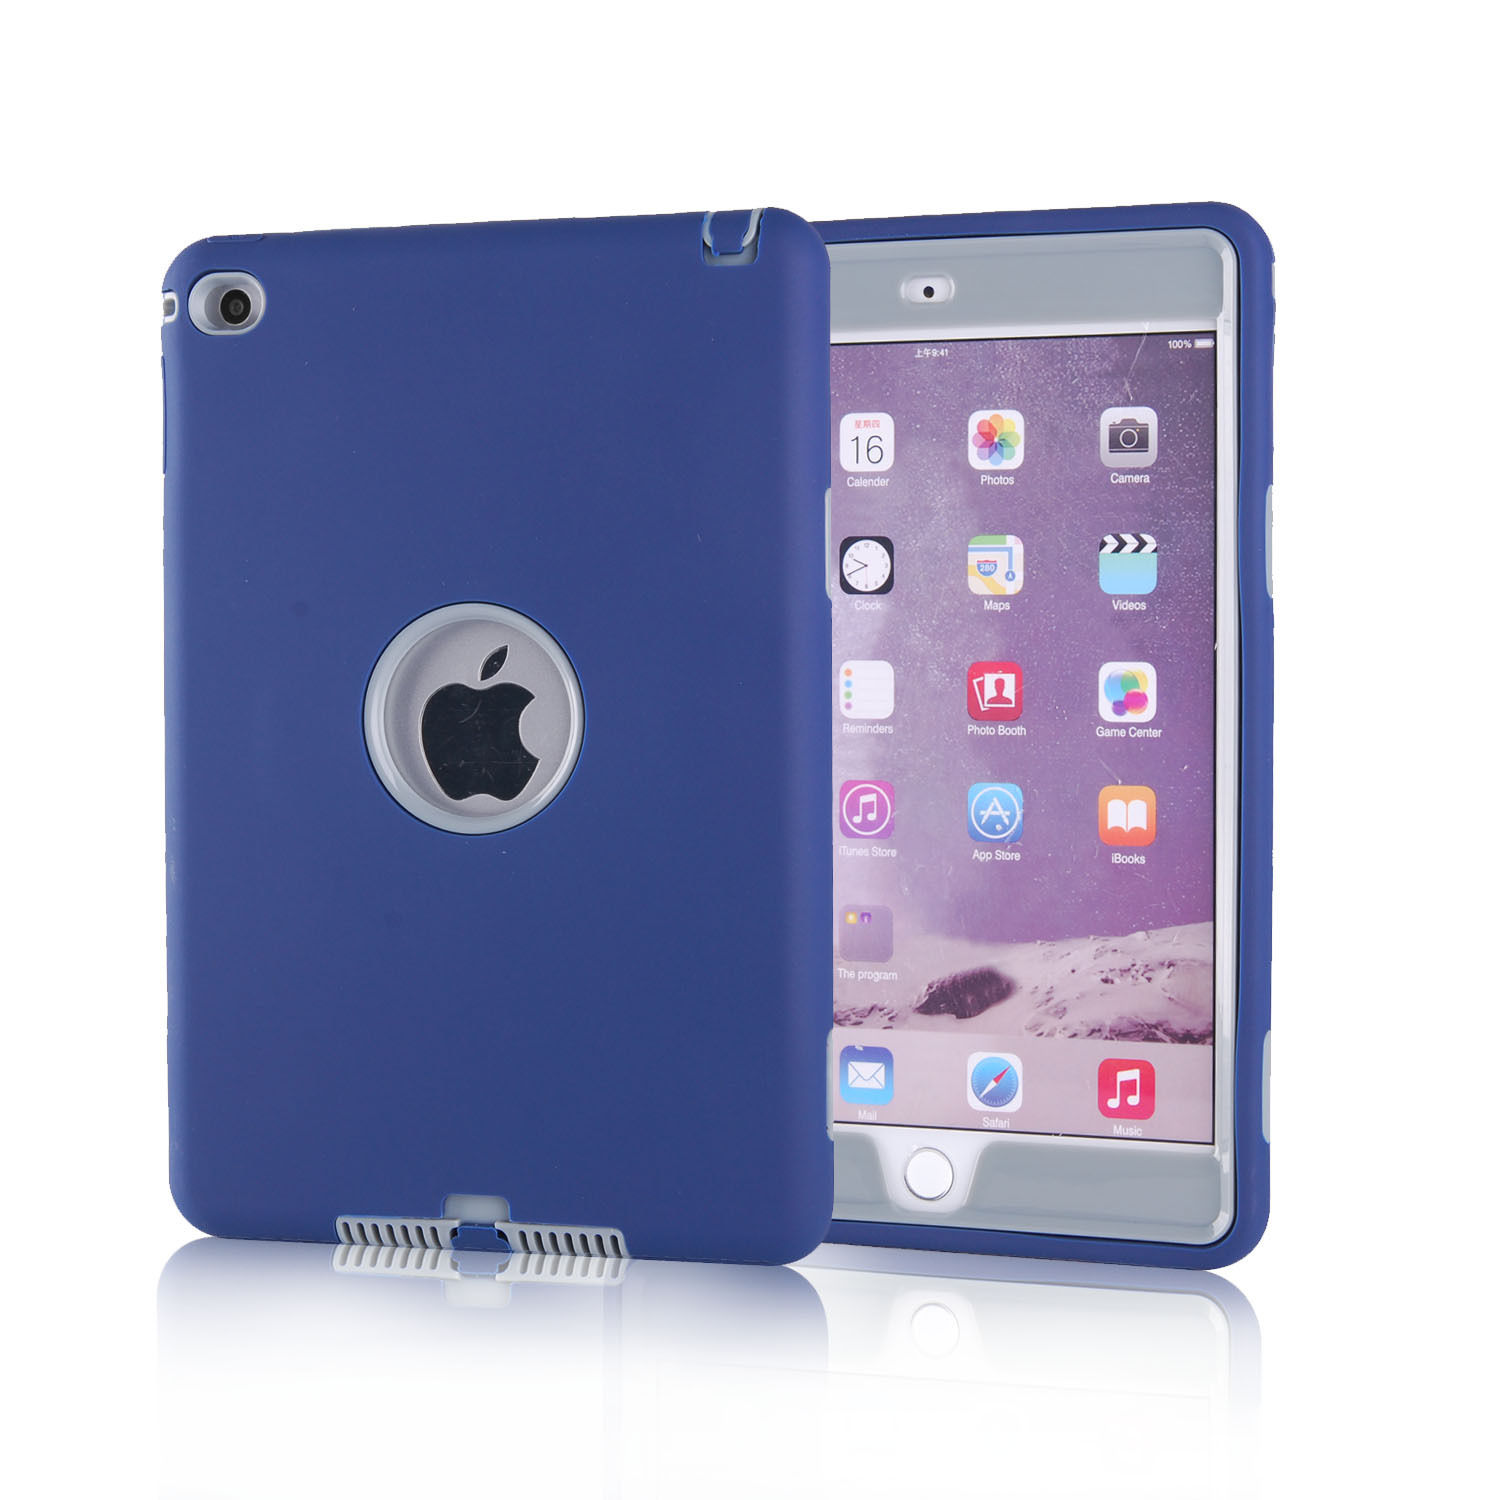 sale retailer 5046f 470dd Details about Heavy Duty Kids Hybrid Shock Dirt Proof Case Cover for Apple  iPad 4 3 2/mini/Air